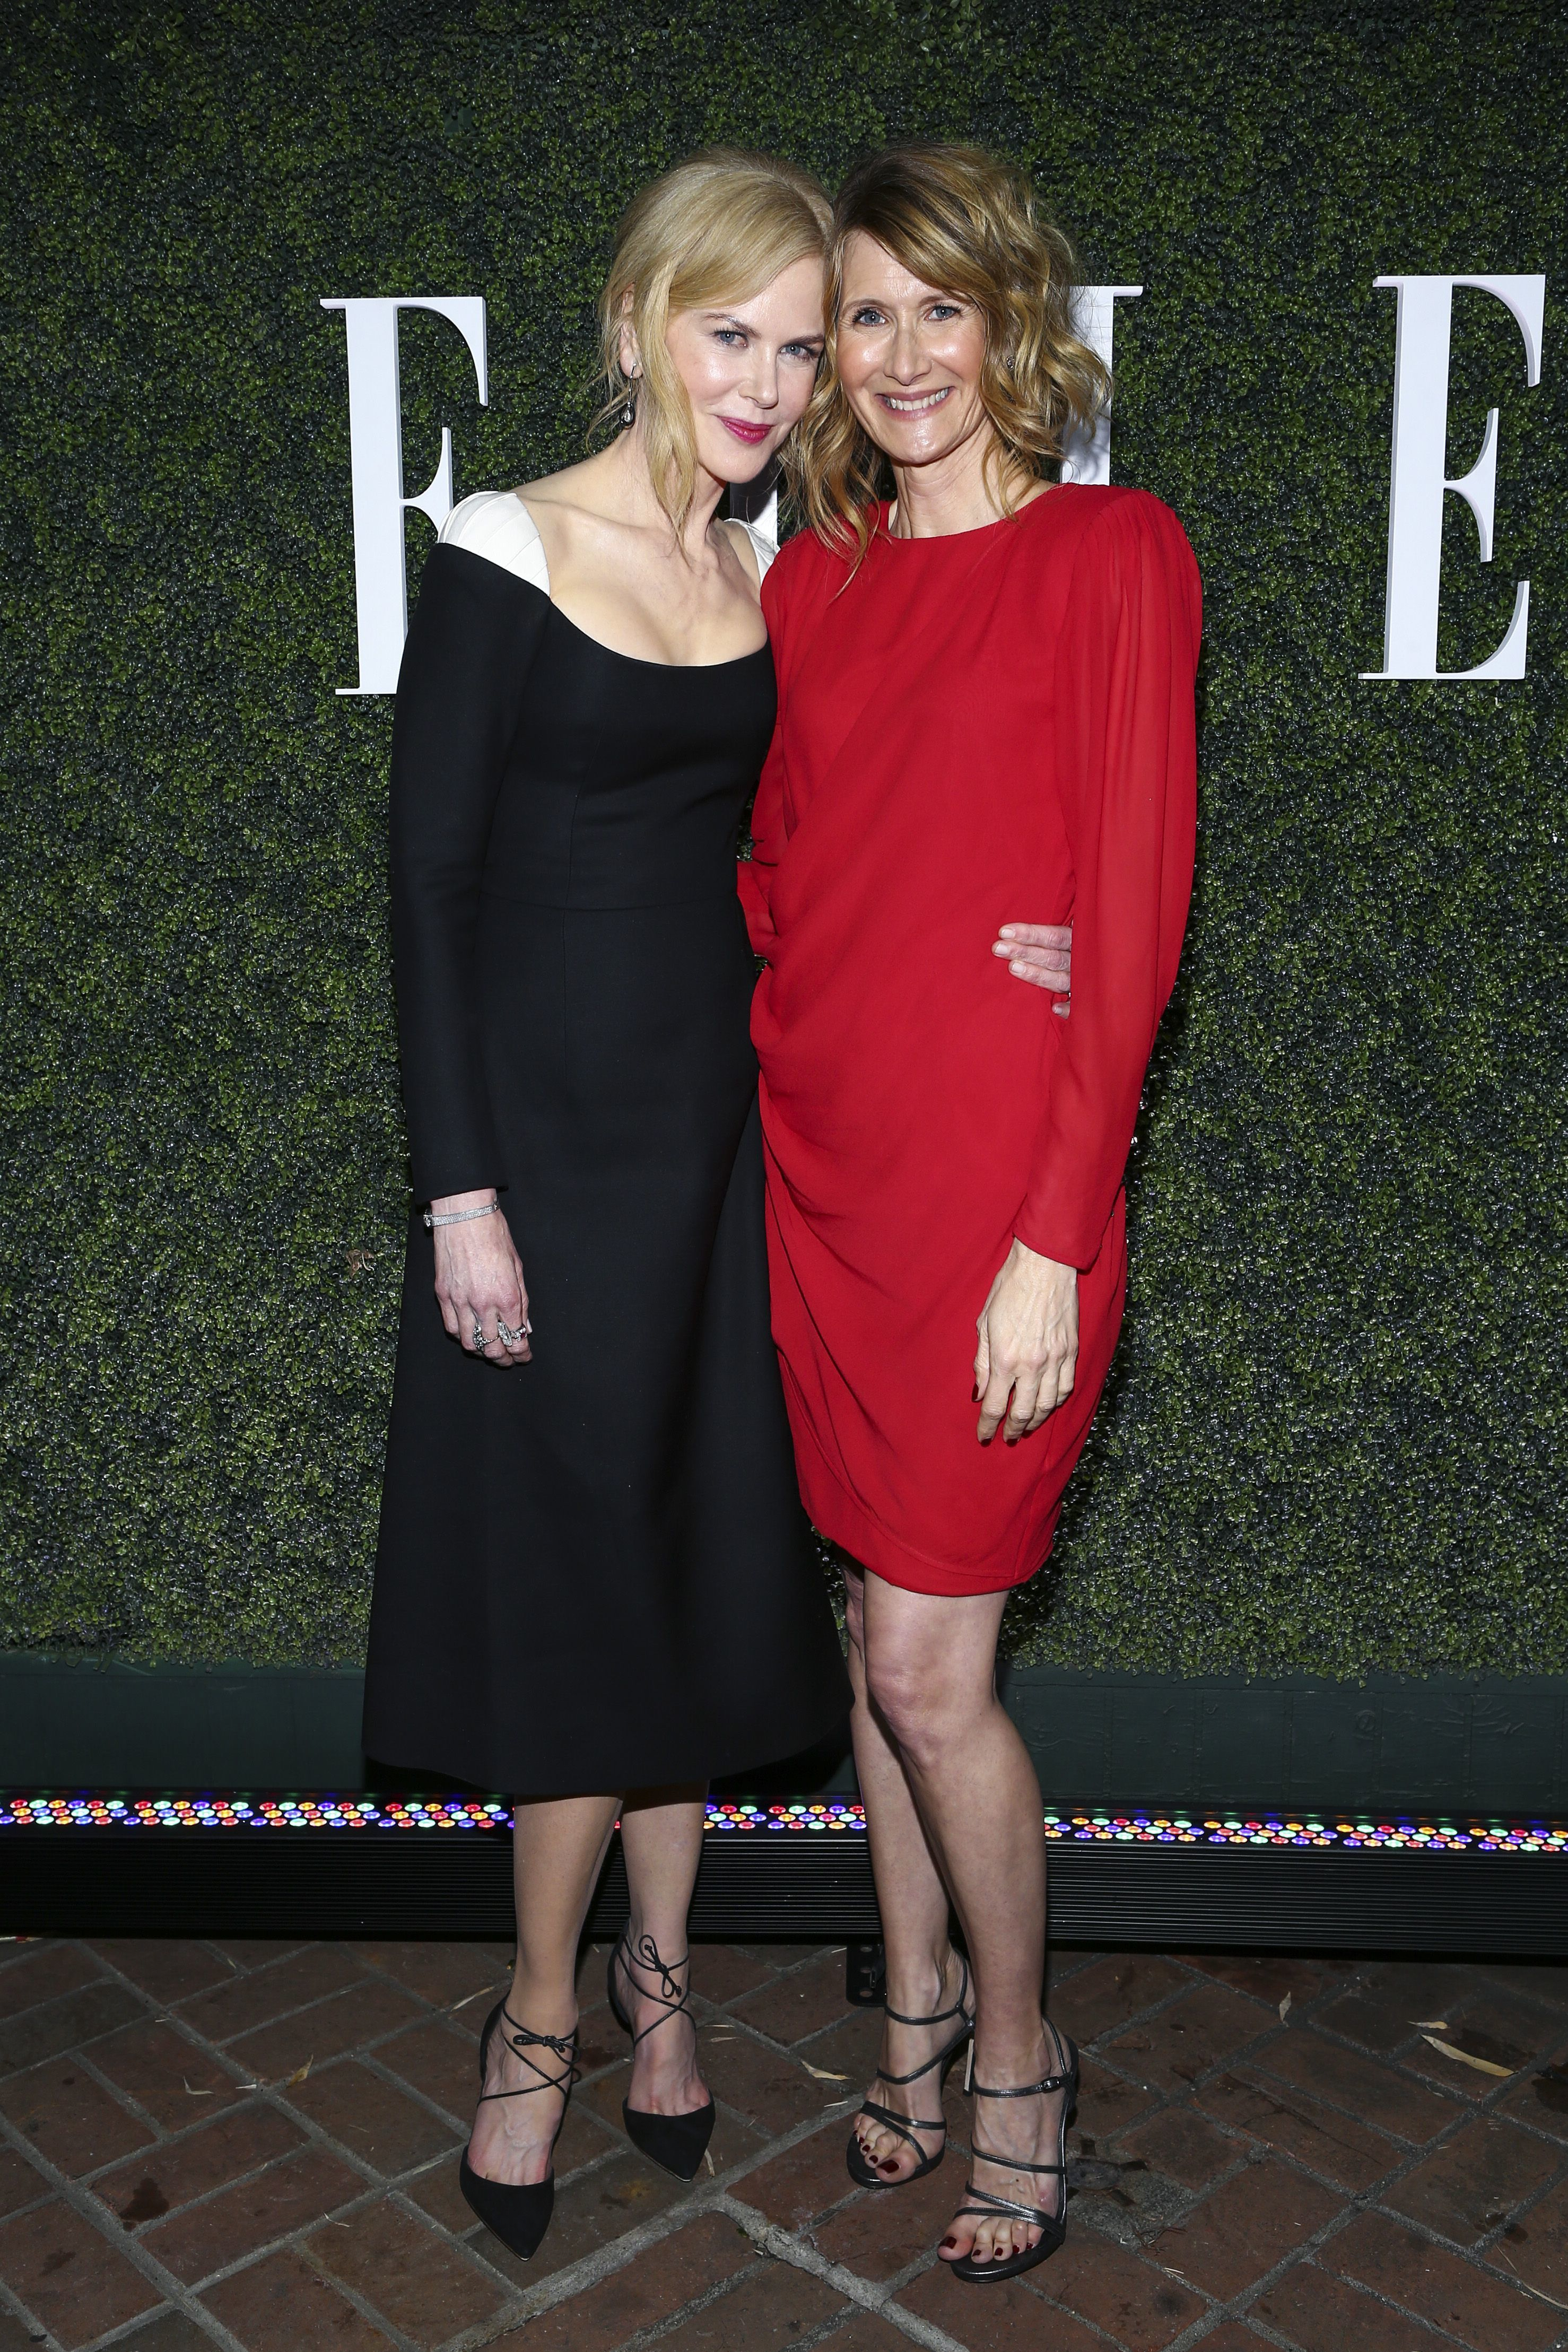 Nicole Kidman and Laura Dern attend the Elle Women in Television in Los Angeles on Jan. 14, 2017.